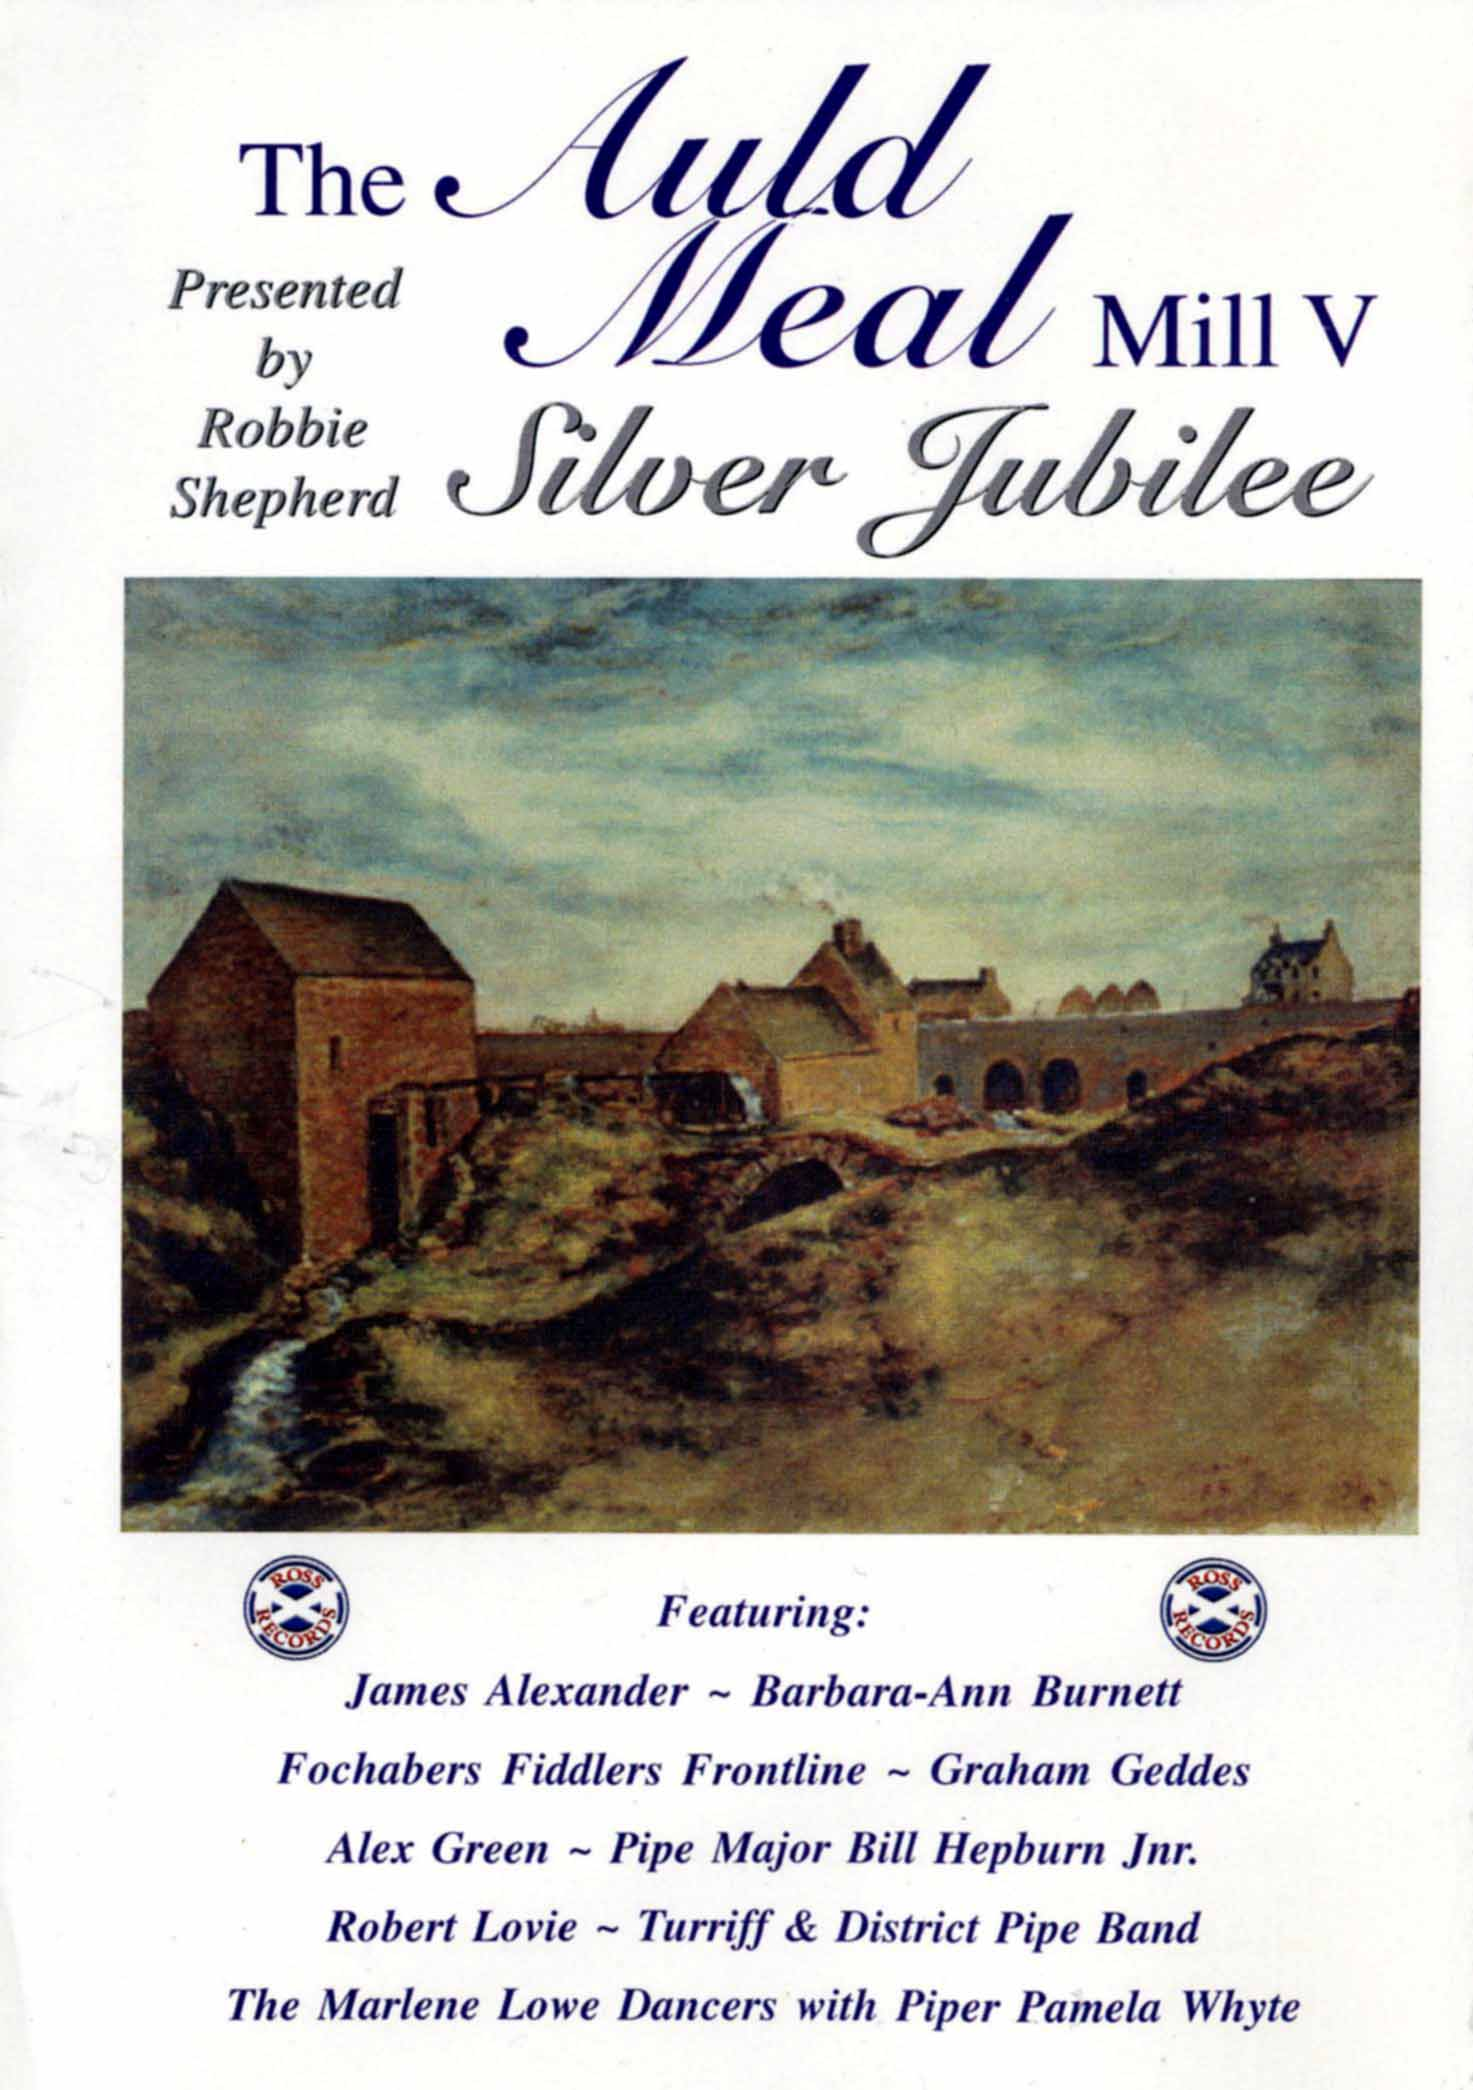 The Auld Meal: Mill V - Silver Jubilee